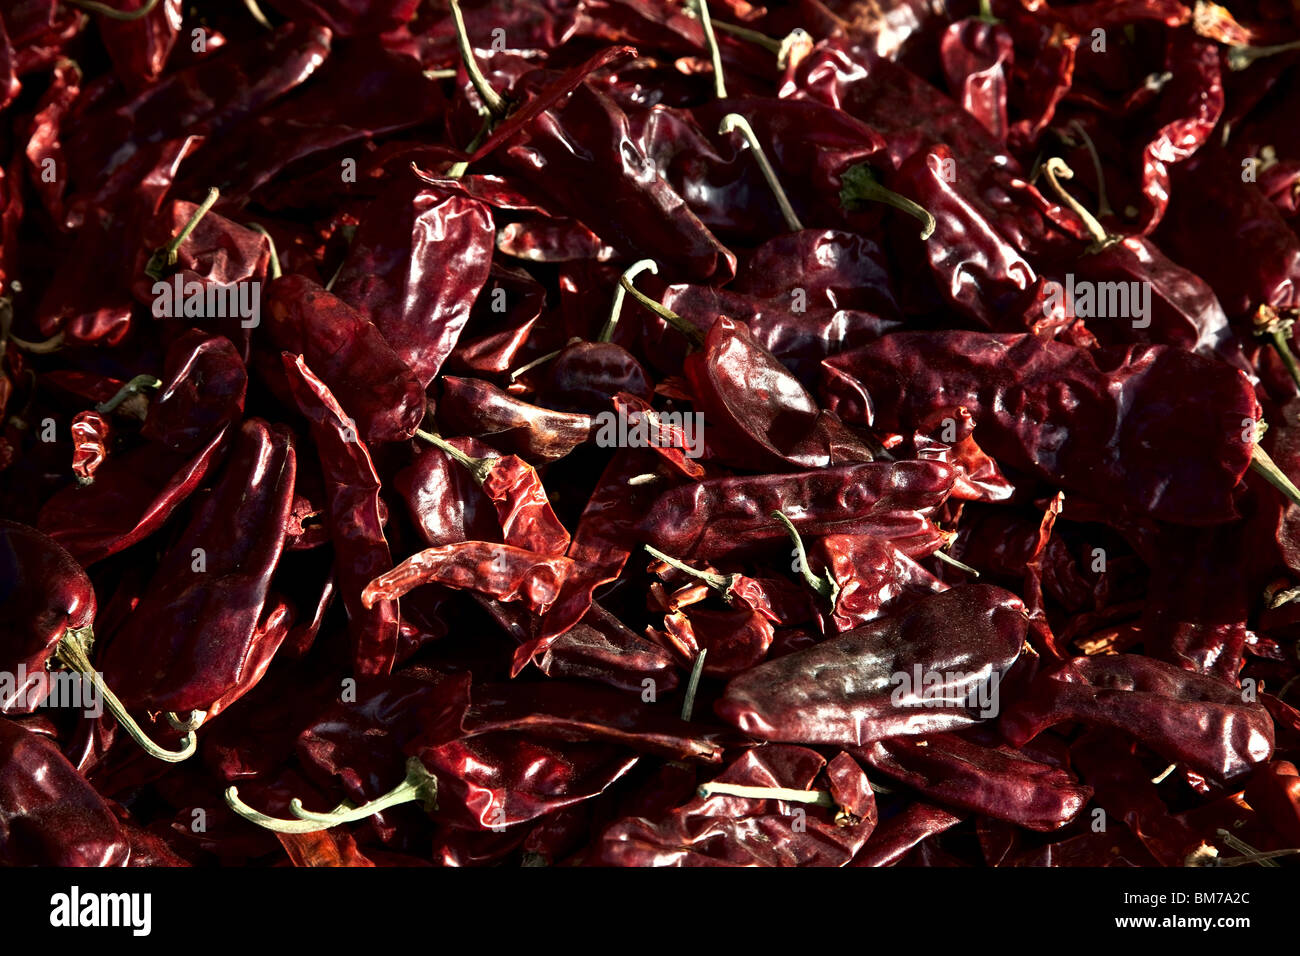 Chillies for sale in the old town in Ahmedabad, Gujurat India - Stock Image